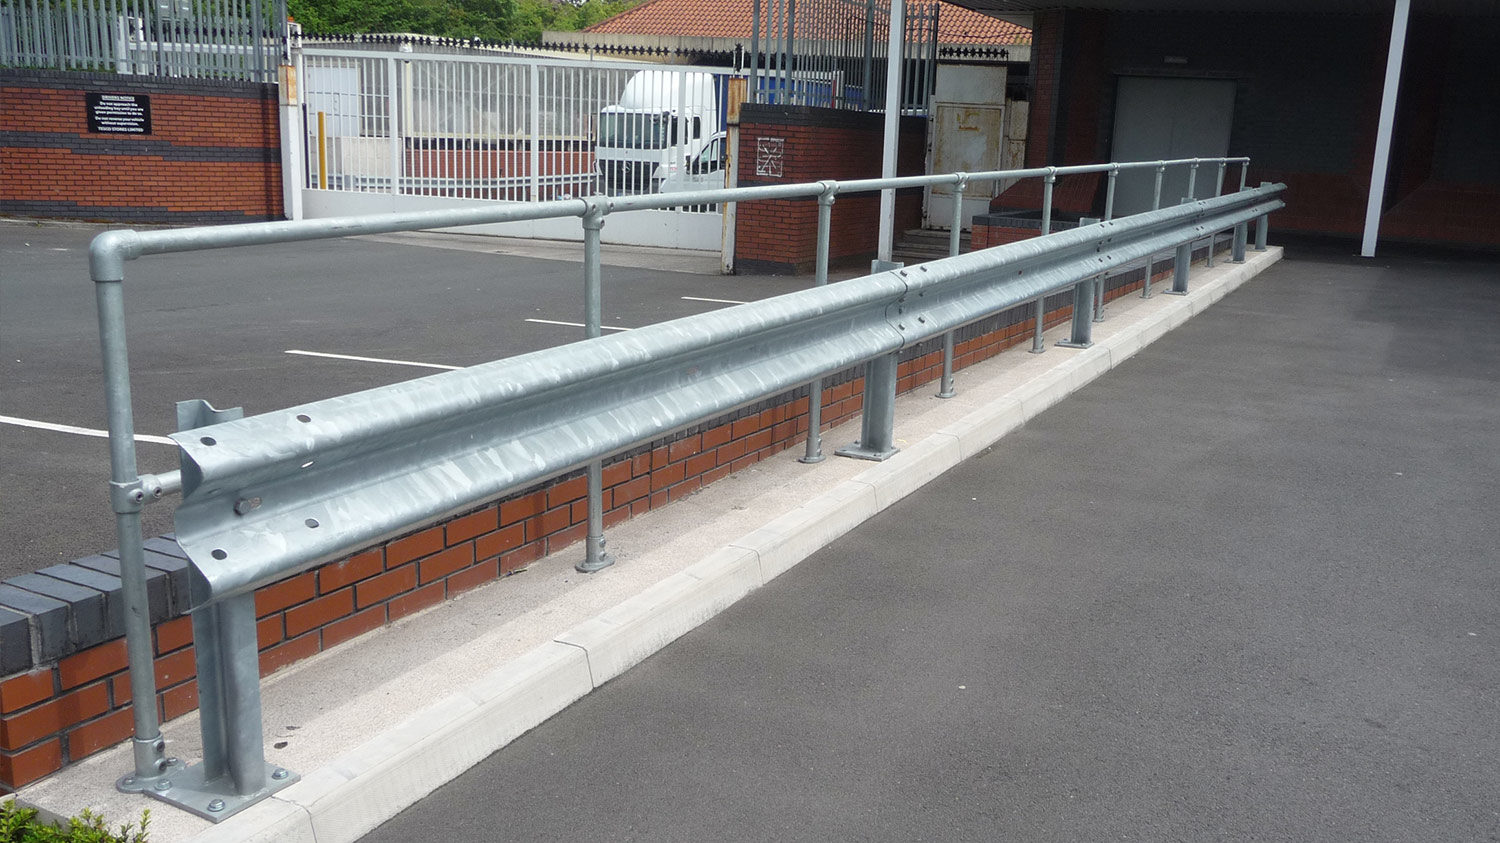 Armco Crash Barriers: A Buyer's Guide